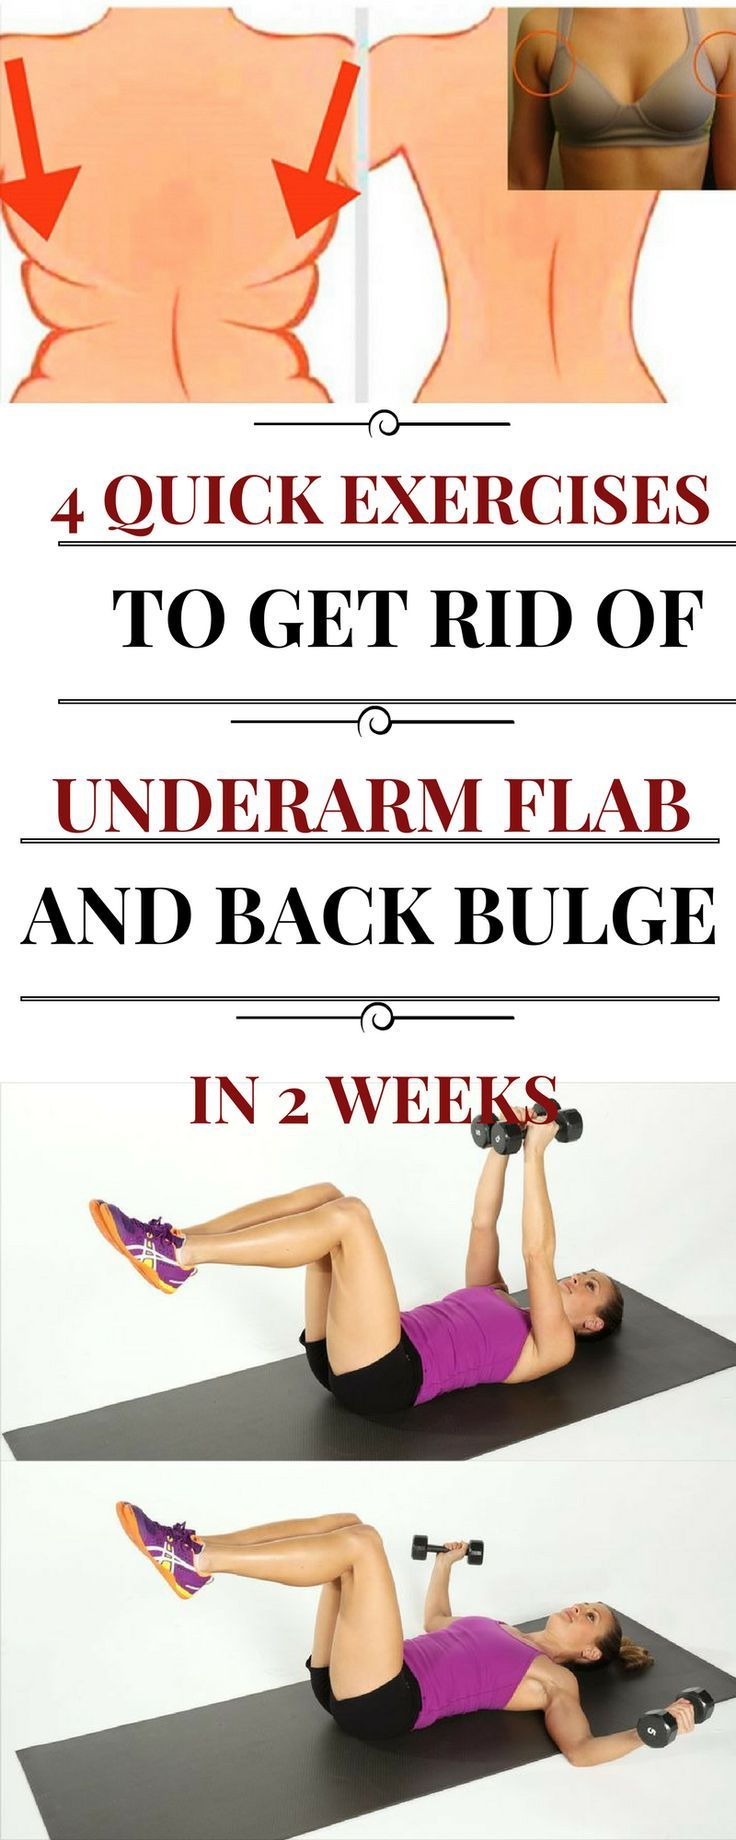 Fitness Motivation : Description The overabundance under fat and back lump cause numerous issues for ladies and the state of their body. Lamentably, eating less carbs can't generally help, however the uplifting news is that … - #Motivation https://madame.tn/fitness-nutrition/motivation/fitness-motivation-the-overabundance-under-fat-and-back-lump-cause-numerous-issues-for-ladies-and-t/